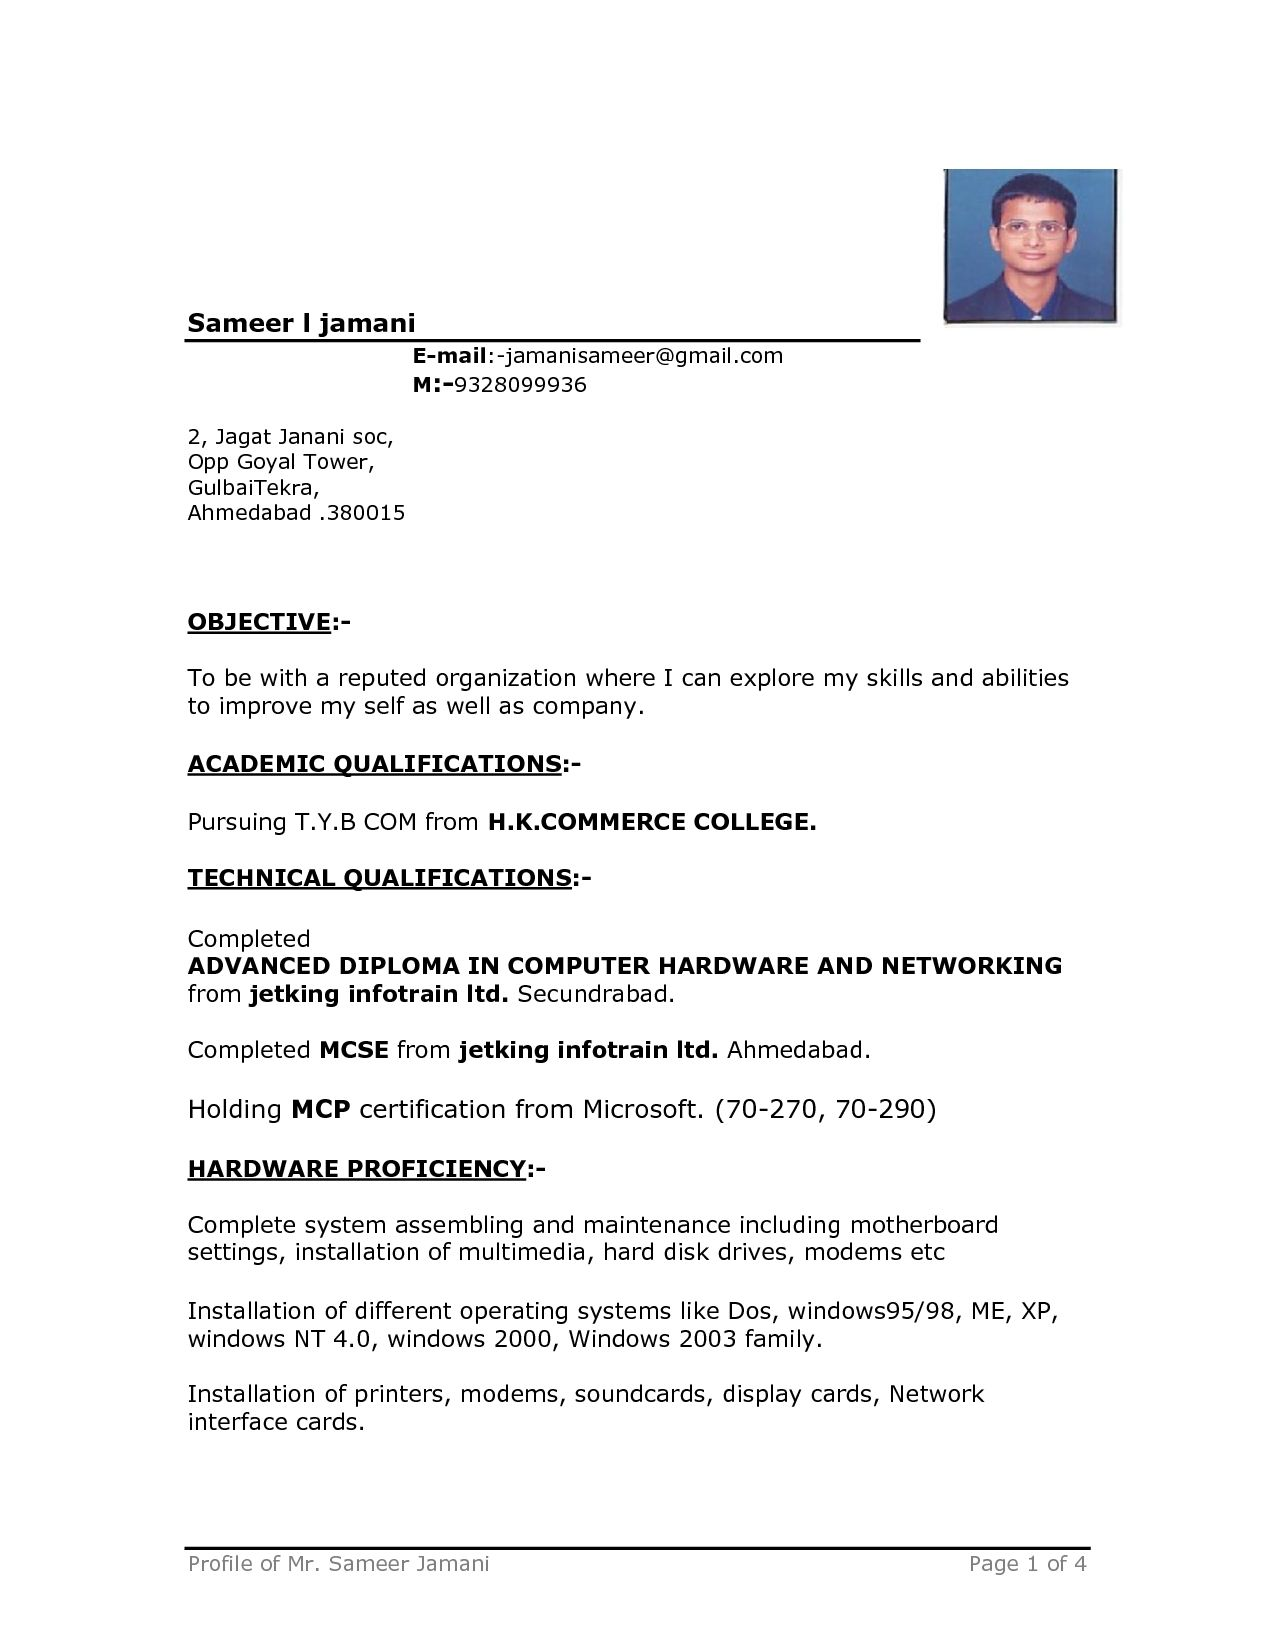 Resume Word Template Free Resume Format On Word Sample Resume Format Word 52076Ec40  Resume